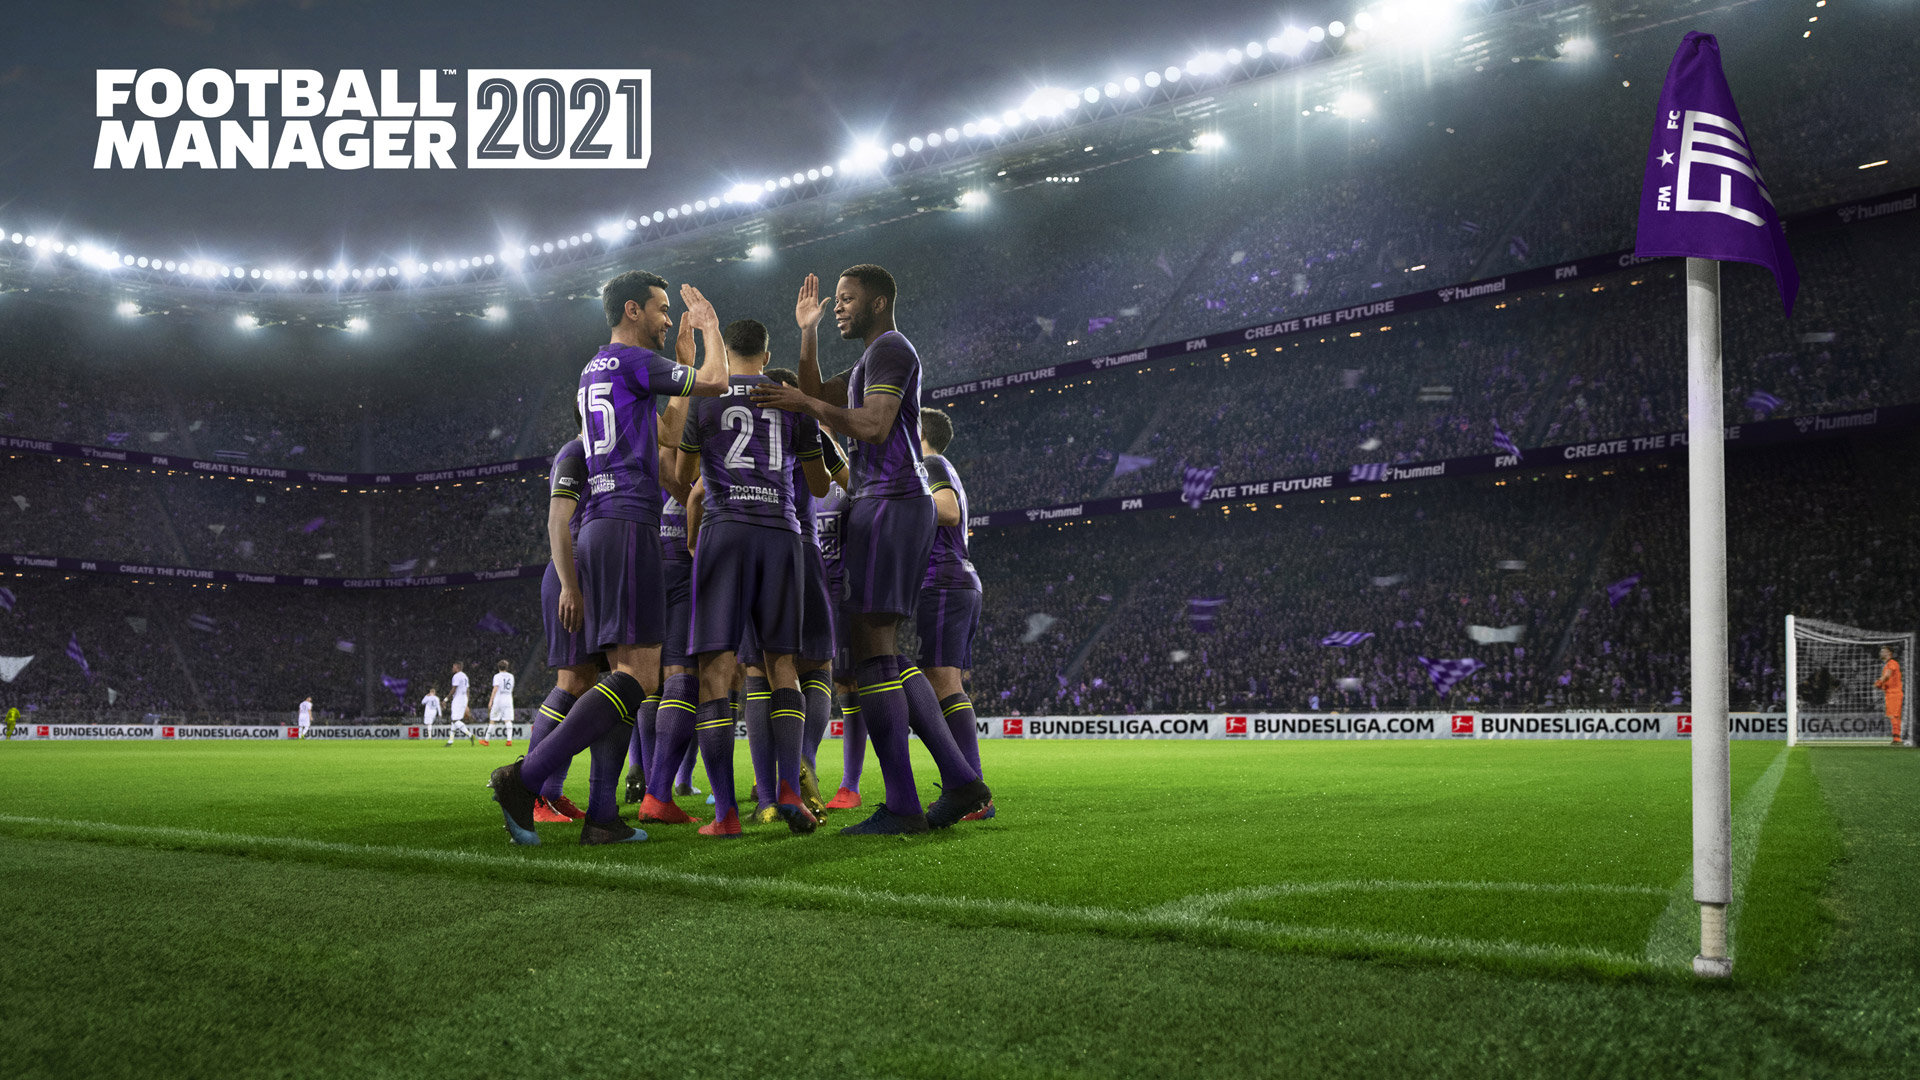 Free Football Manager 2021 Wallpaper in 1920x1080